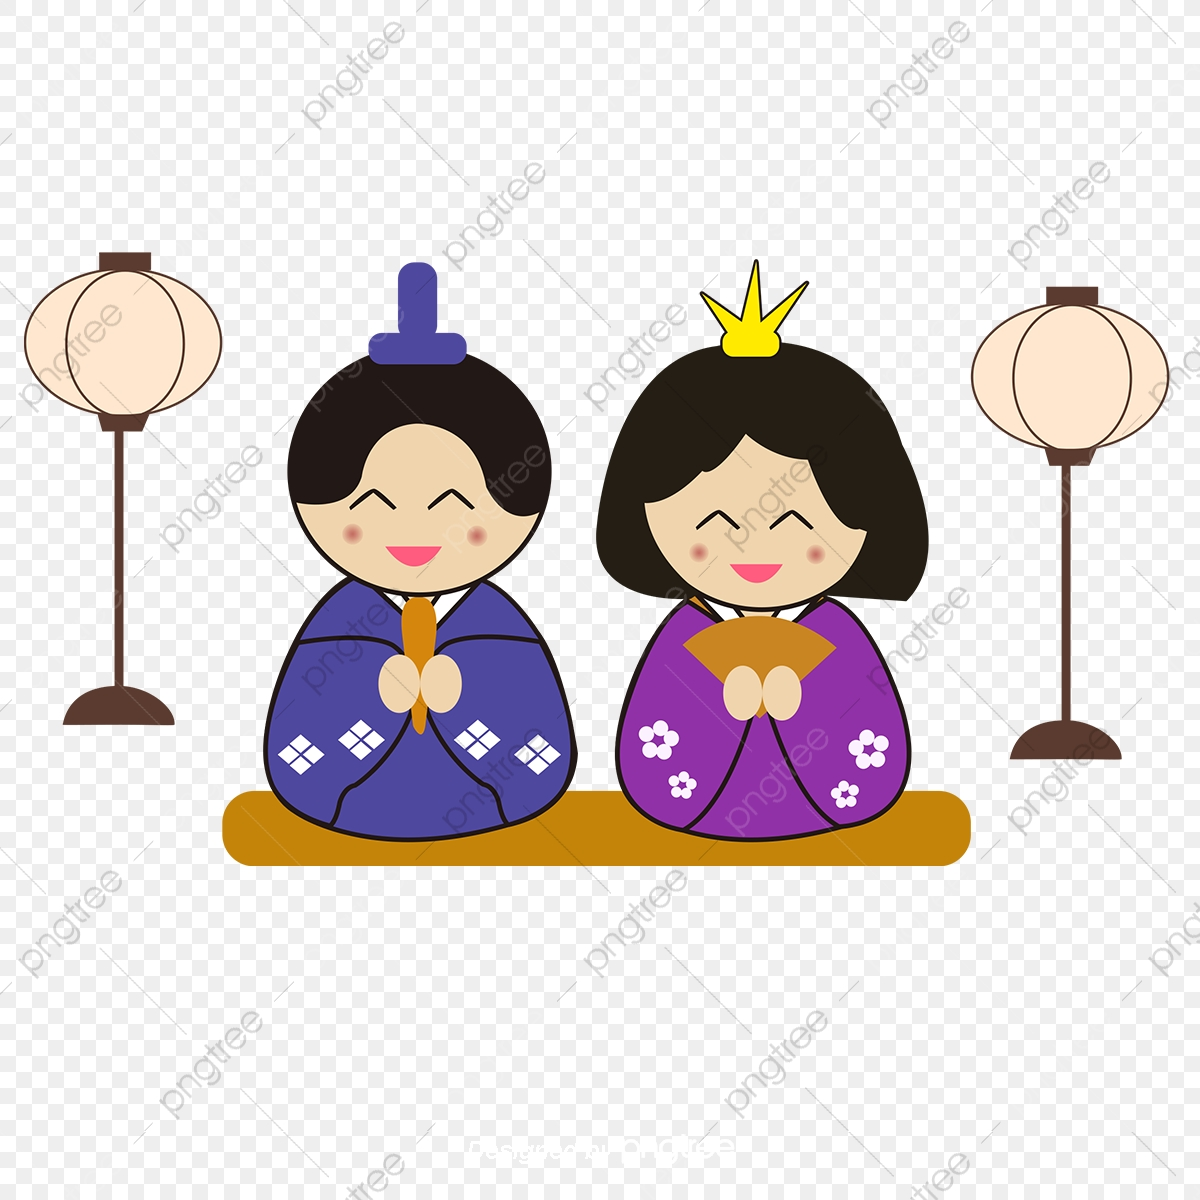 Male and female costumes. Japanese clipart japanese traditional